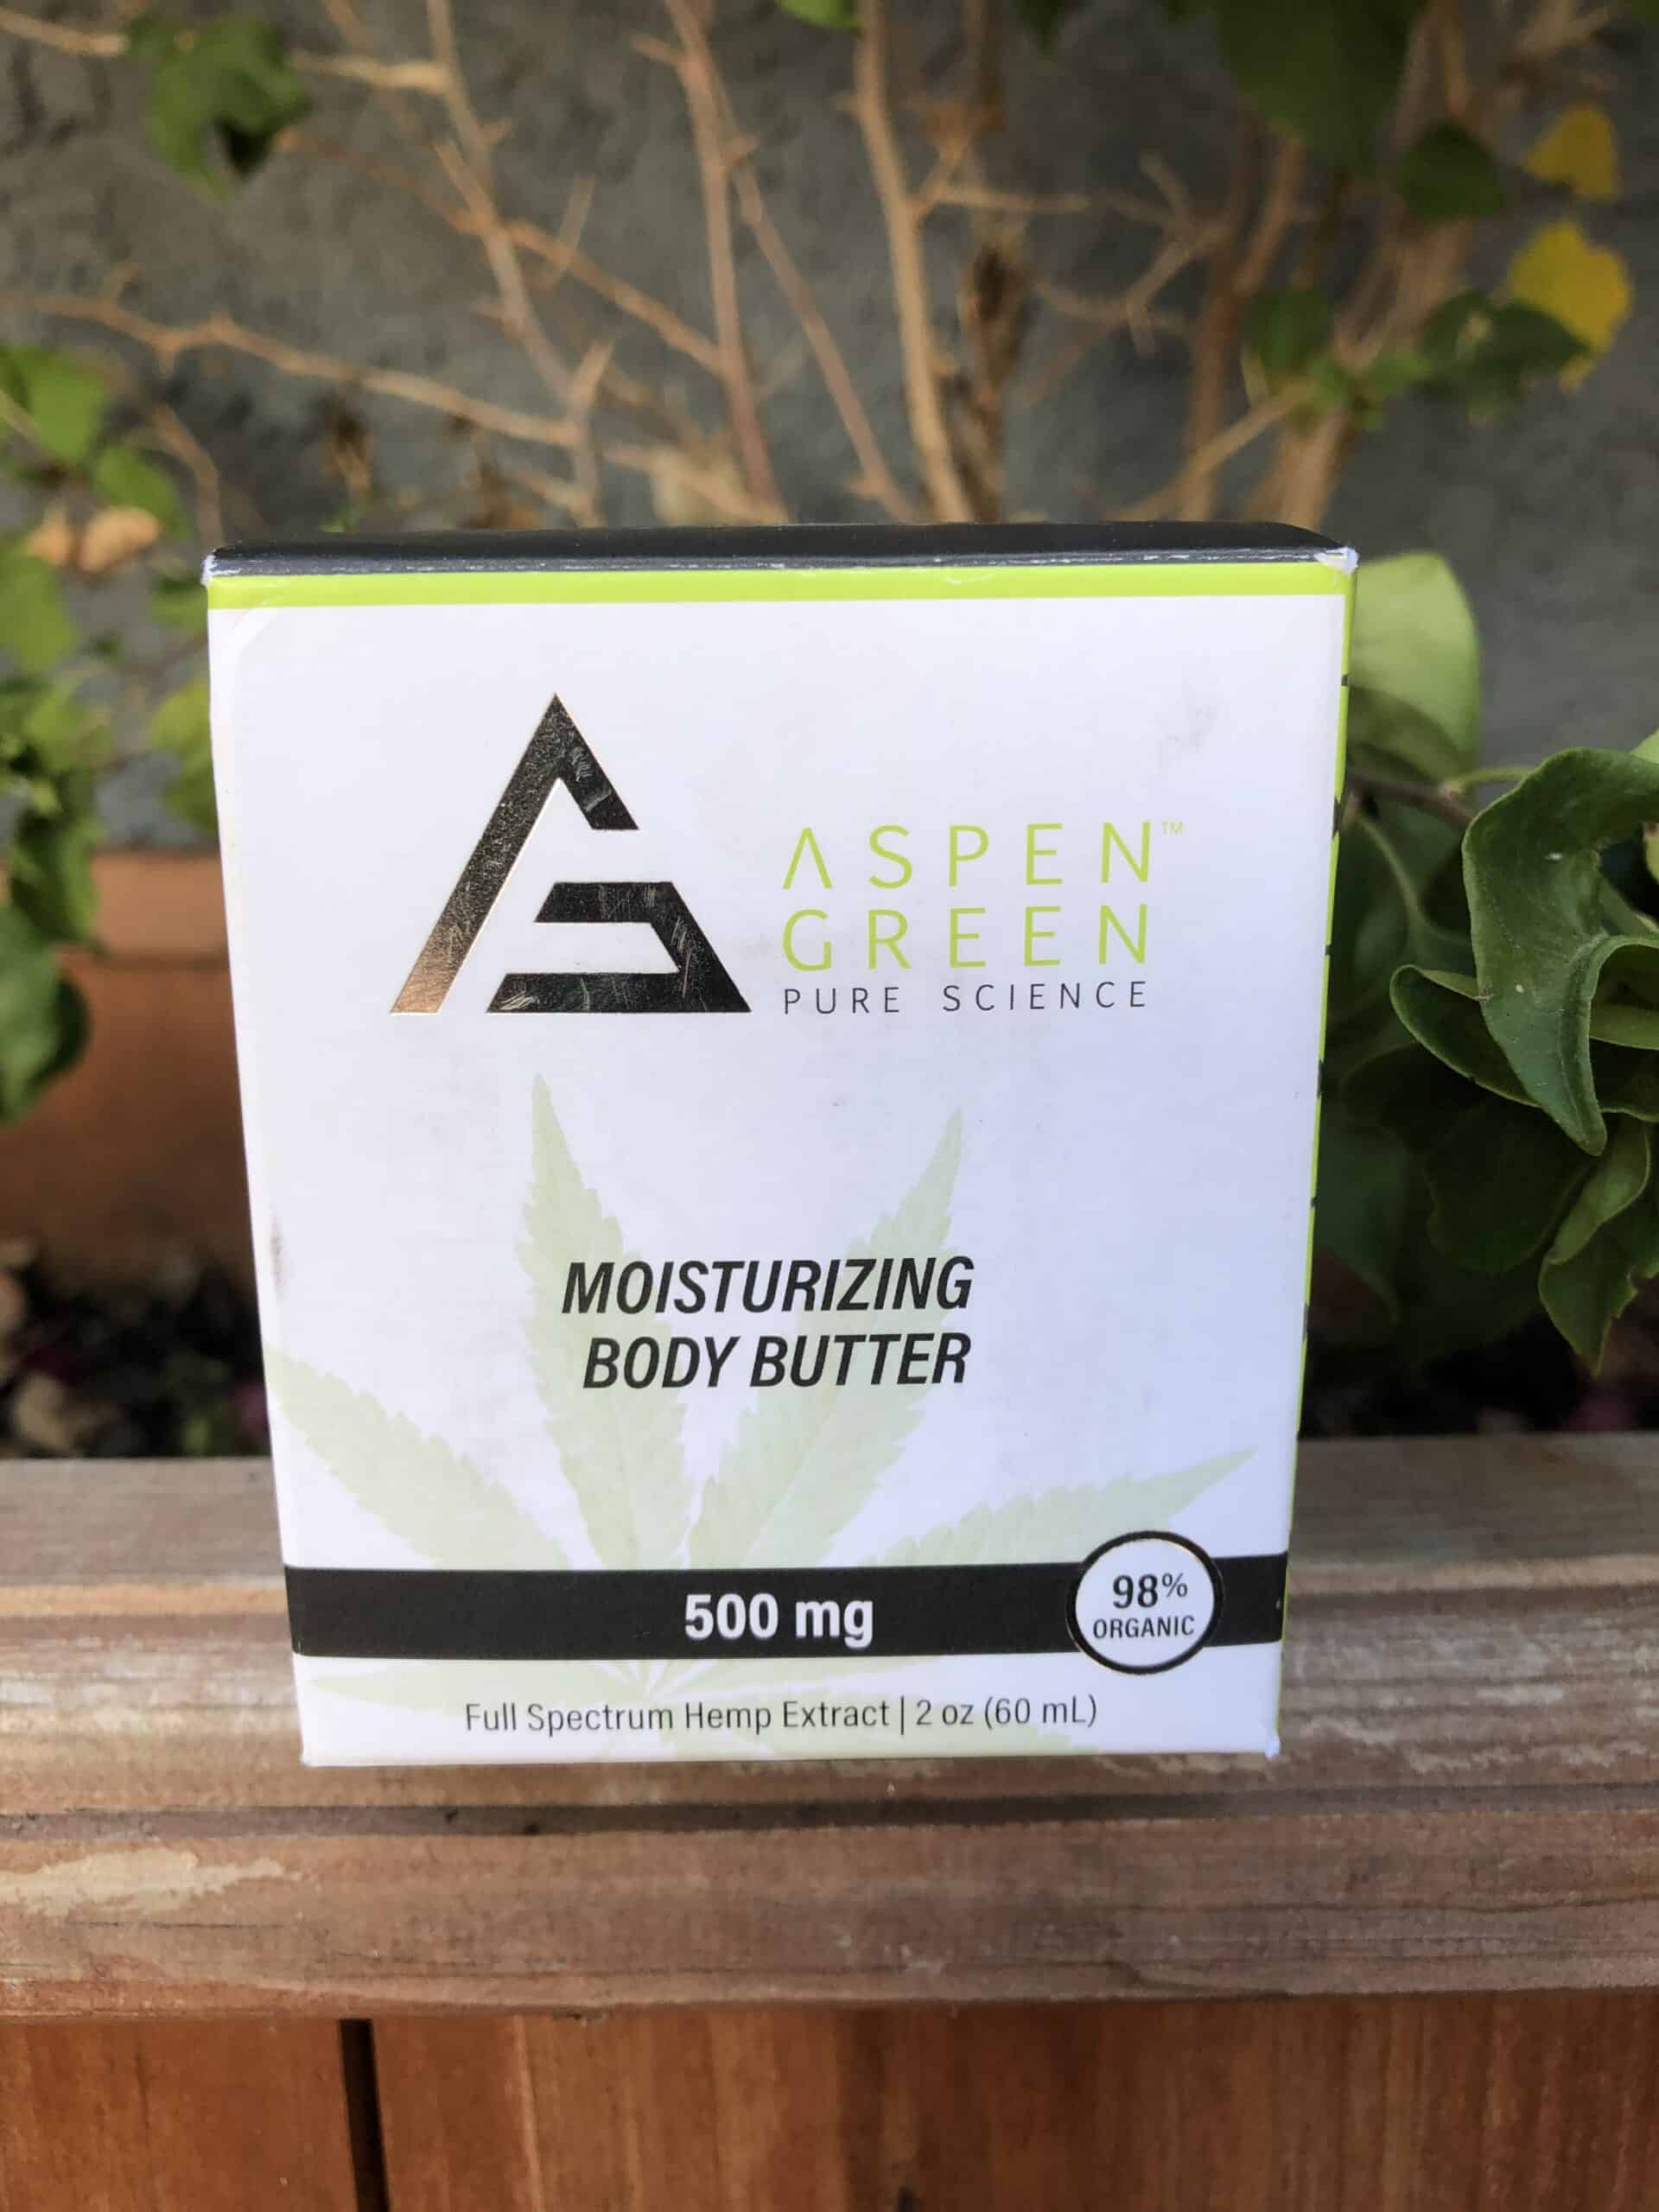 aspen green moisturizing body butter save on cannabis review